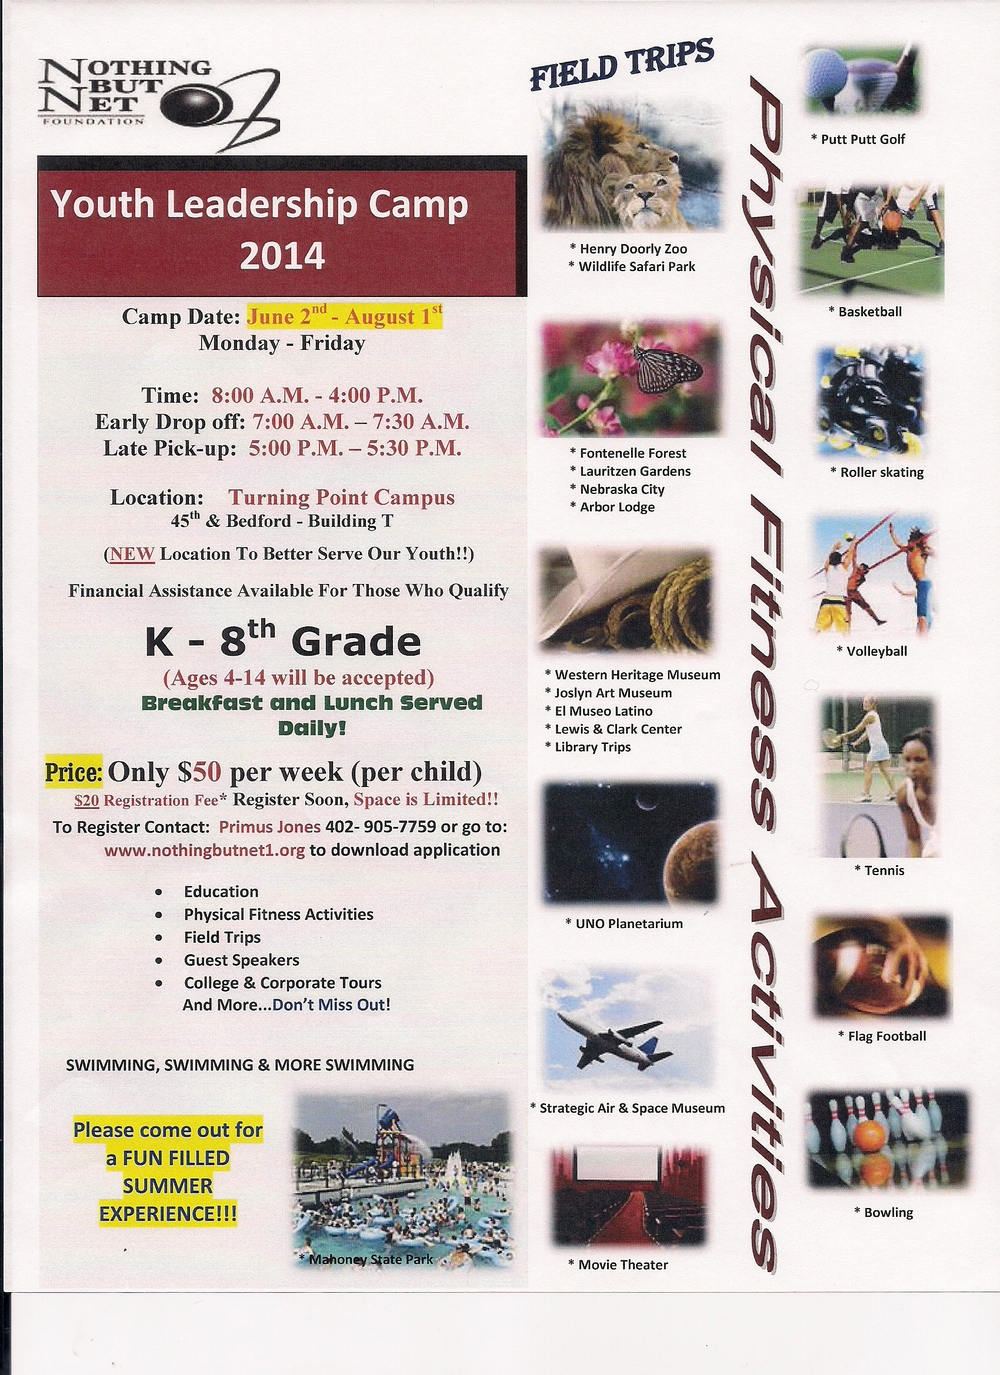 Youth Leadership Camp